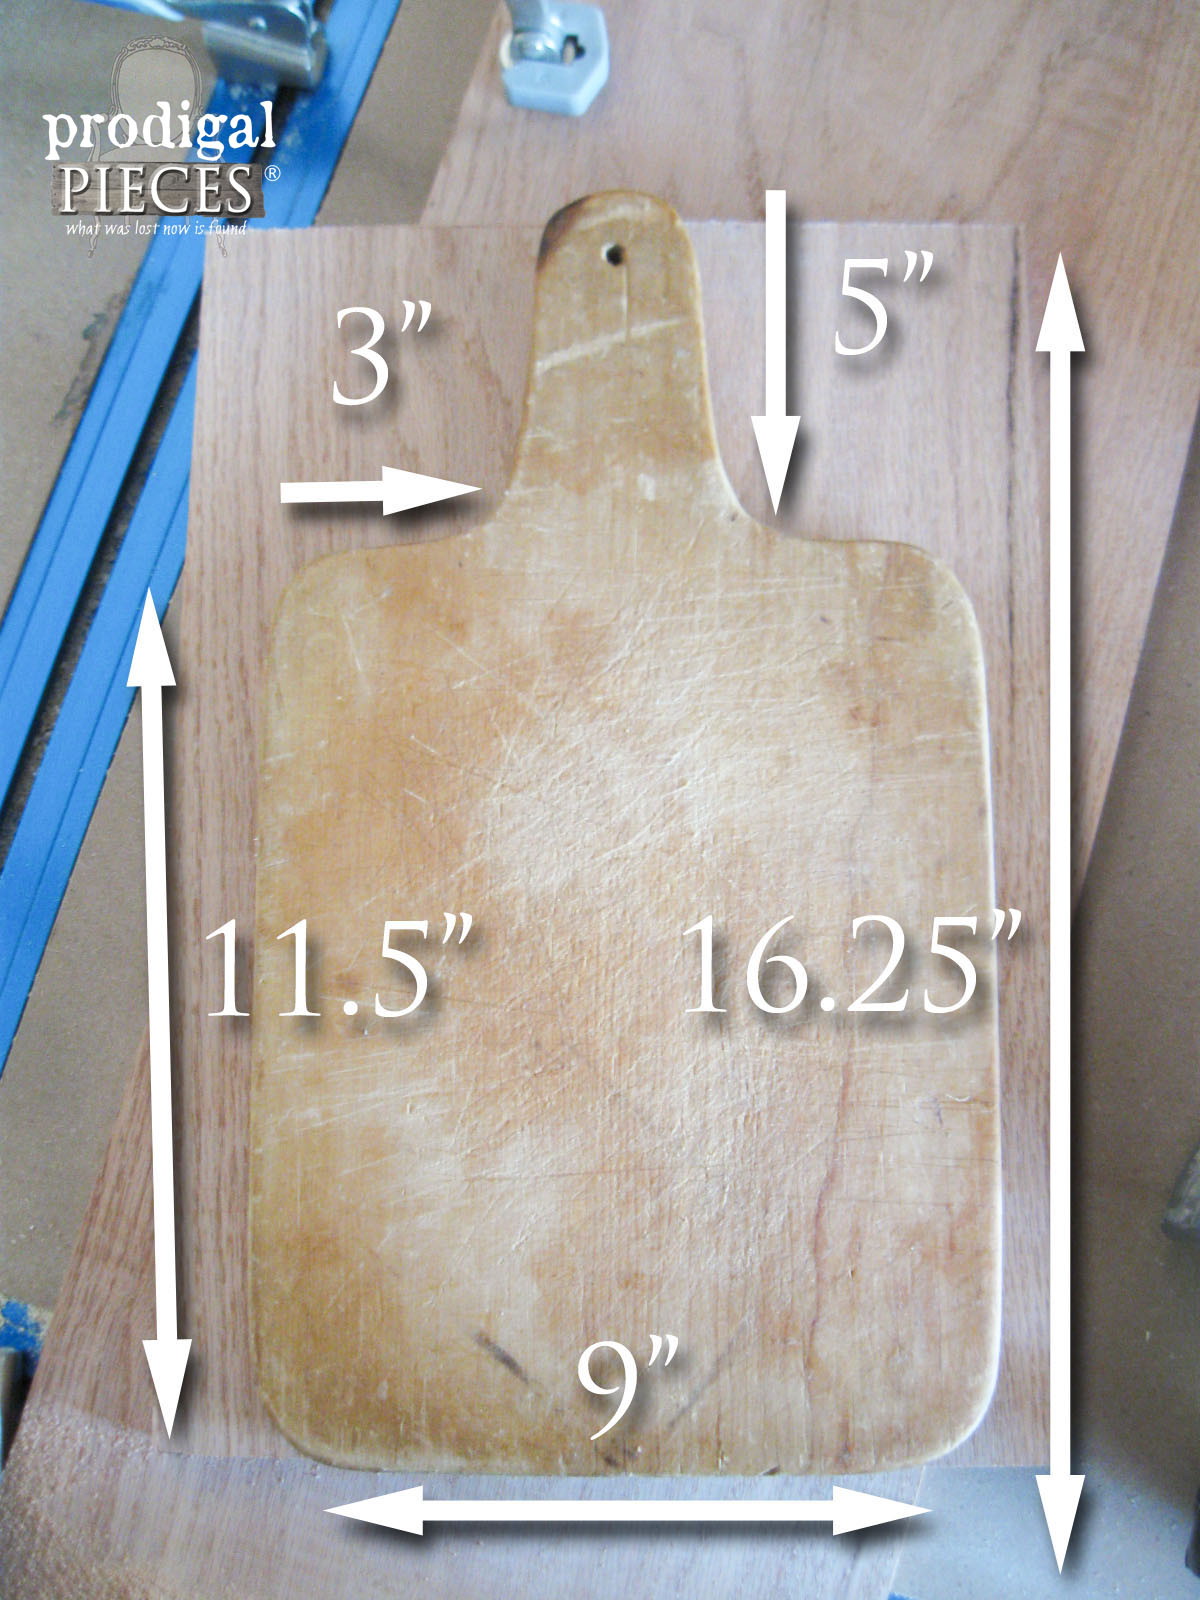 Template to Make your Own Farmhouse Cutting Board by Prodigal Pieces | www.prodigalpieces.com